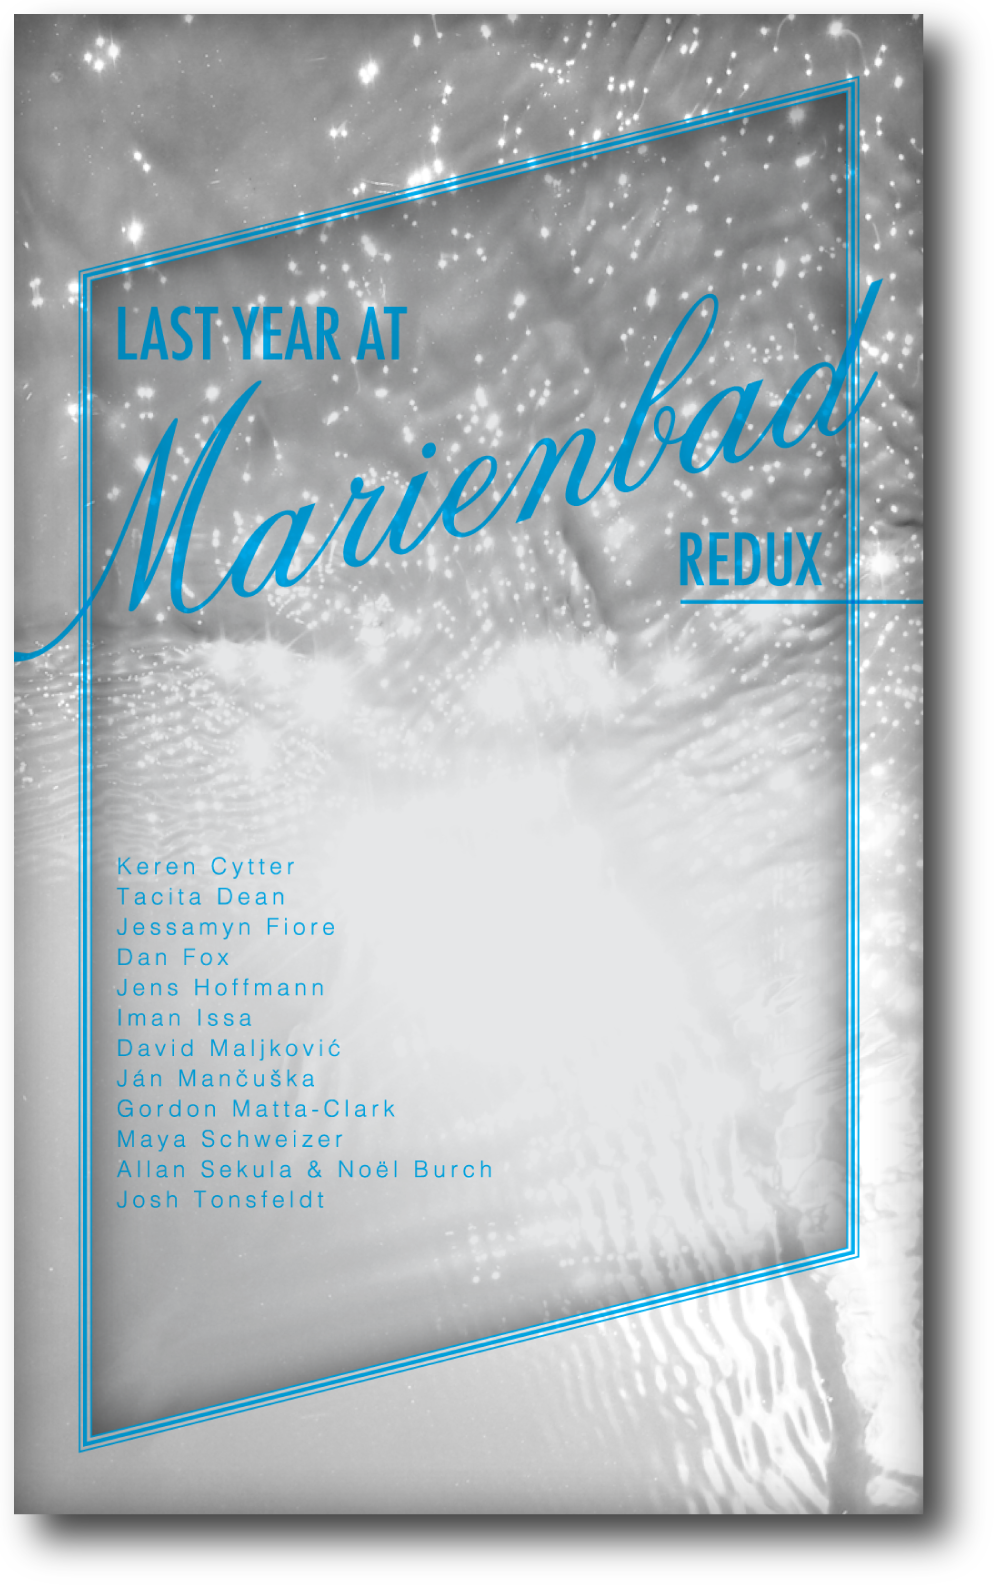 Last Year at Marienbad redux , published by Bureau for Open Culture, 2013; designed by Nate Padavick; 80 pages; 11 x 6.67 inches